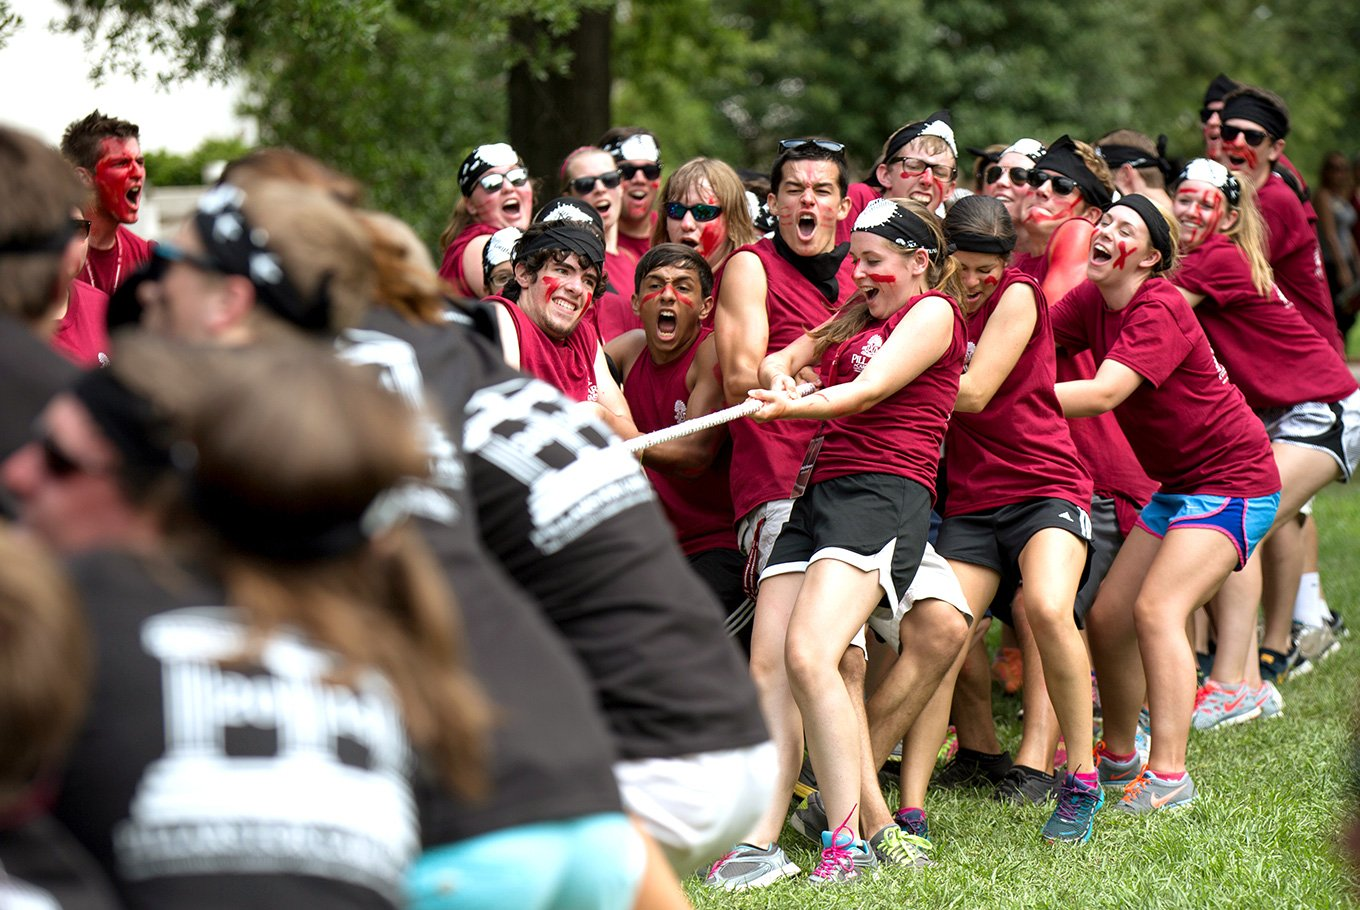 Students participate in a massive tug of war